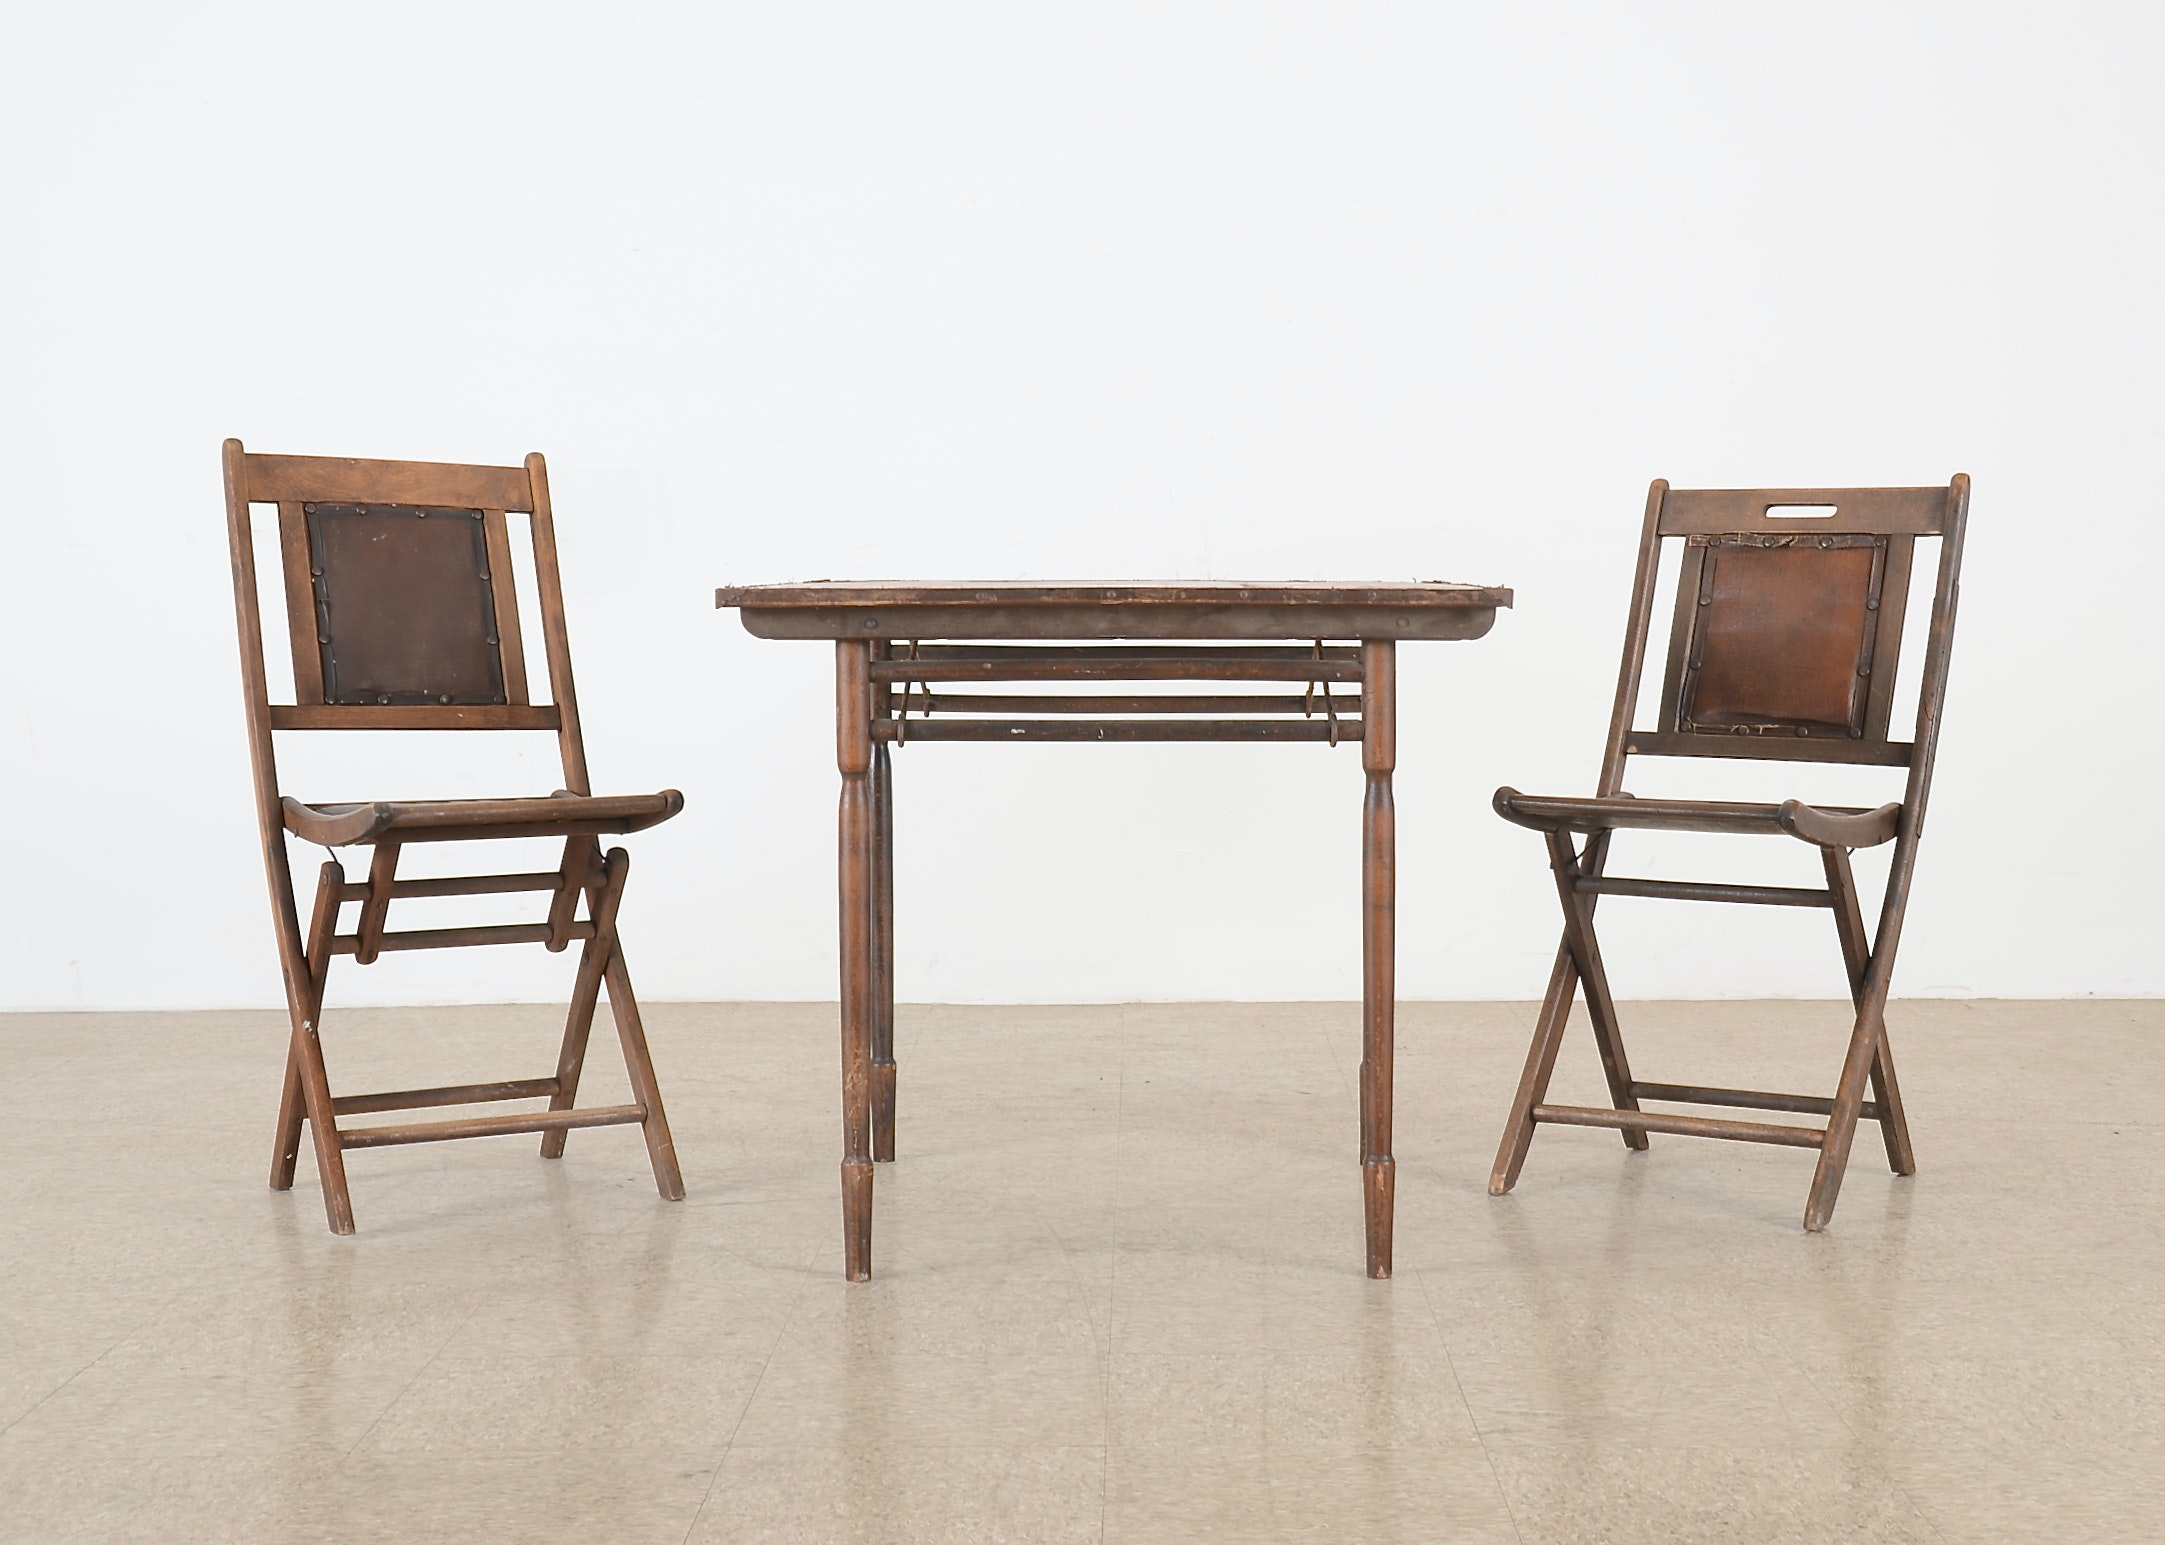 Circa 1930s Wooden Card Table And Two Wooden Folding